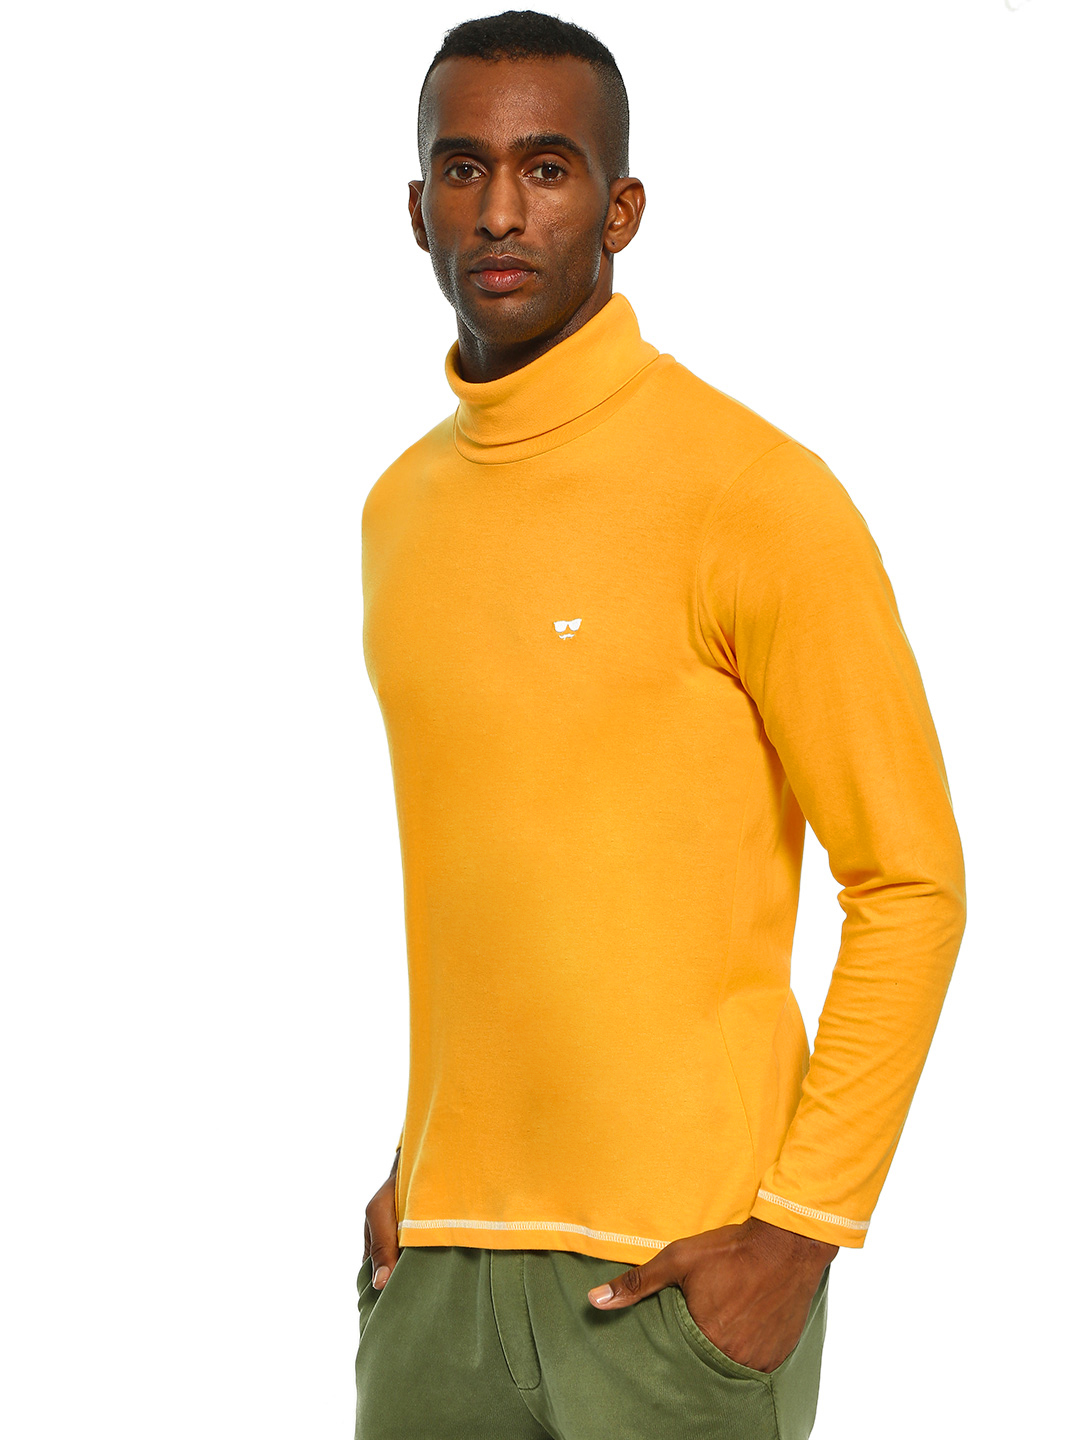 Garcon Yellow Turtle Neck Long Sleeve T-Shirt 1